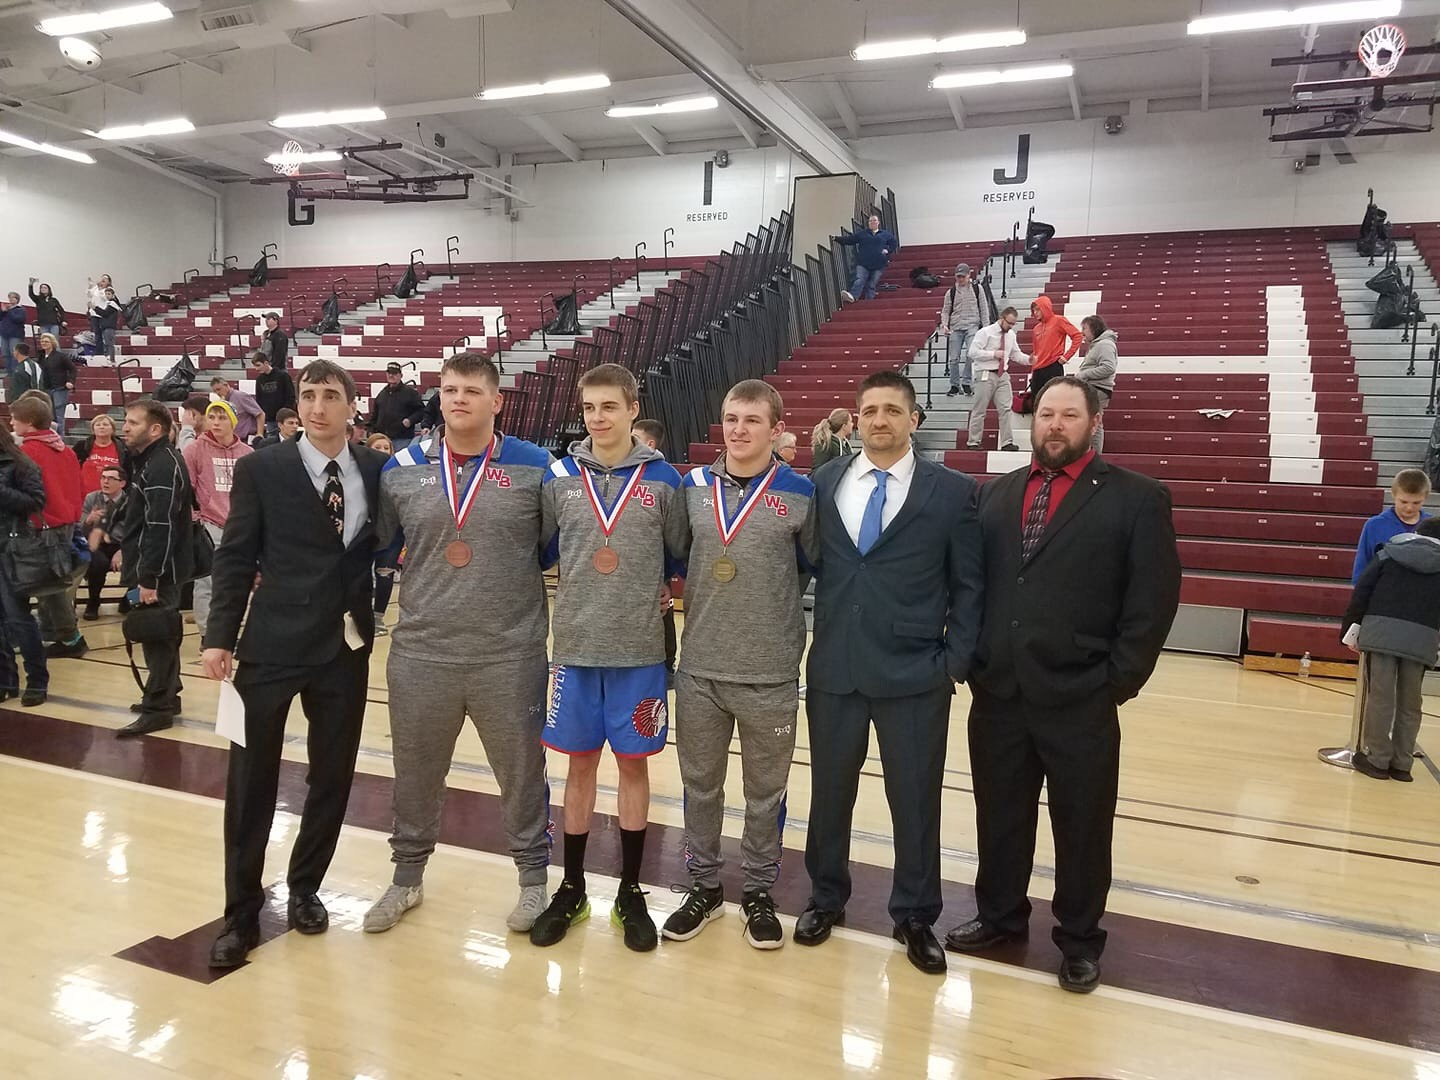 The Warrior Wrestlers and their coaches. (From left to right) Dave Williamson, Jacob Shaw, Tyler Denochick, Derek Yingling, Coach Bainey, George Yingling Photo courtesy of West Branch Warriors Wrestling.